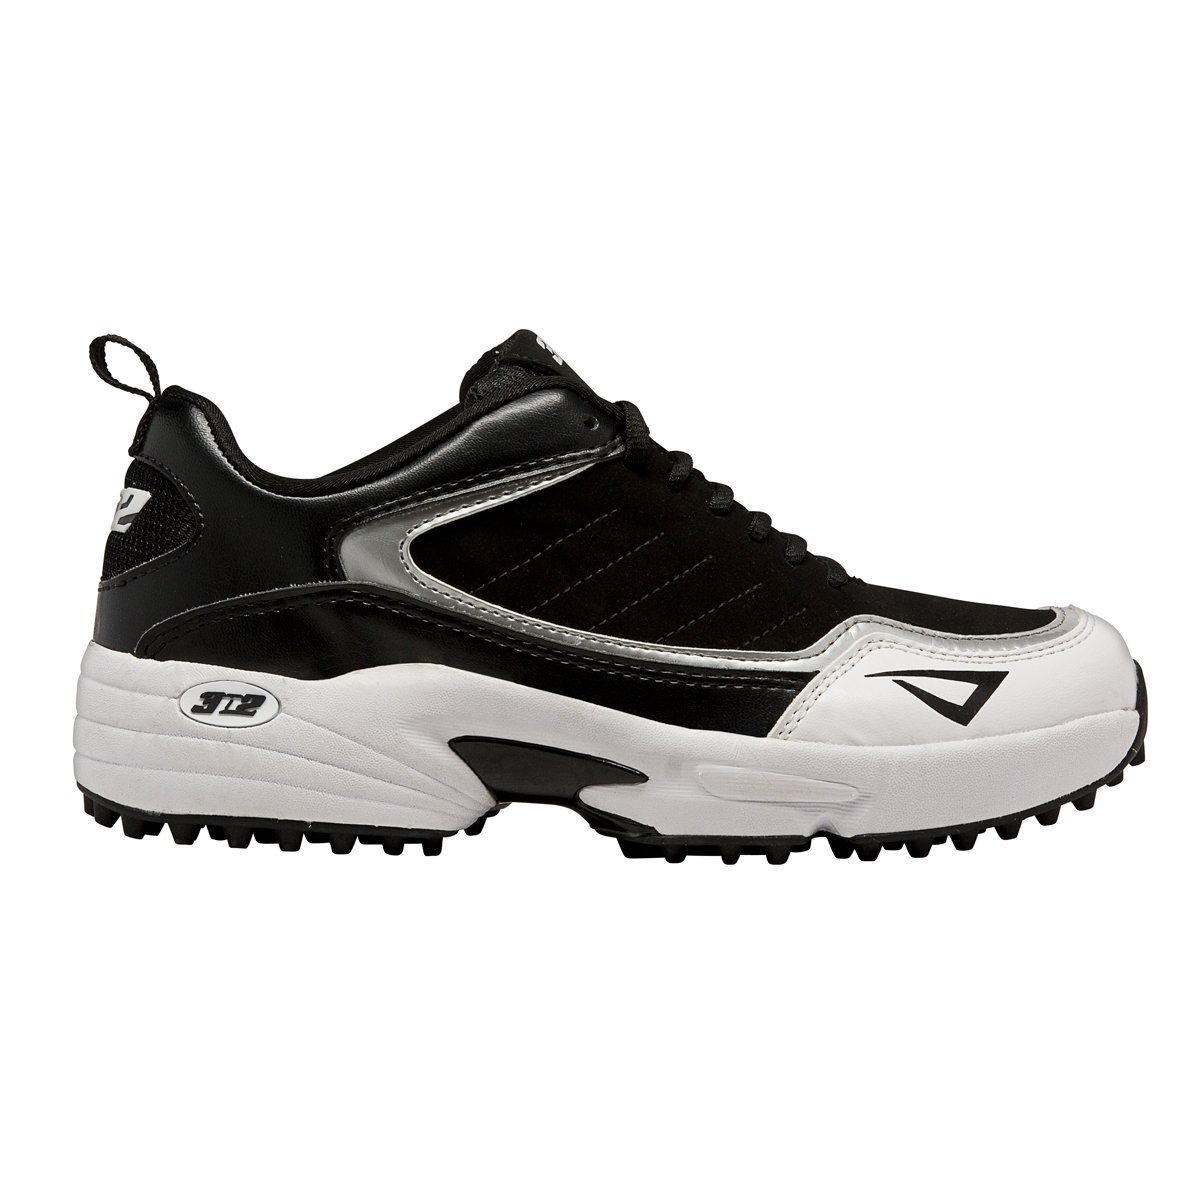 3N2 Men s Viper Turf Trainer